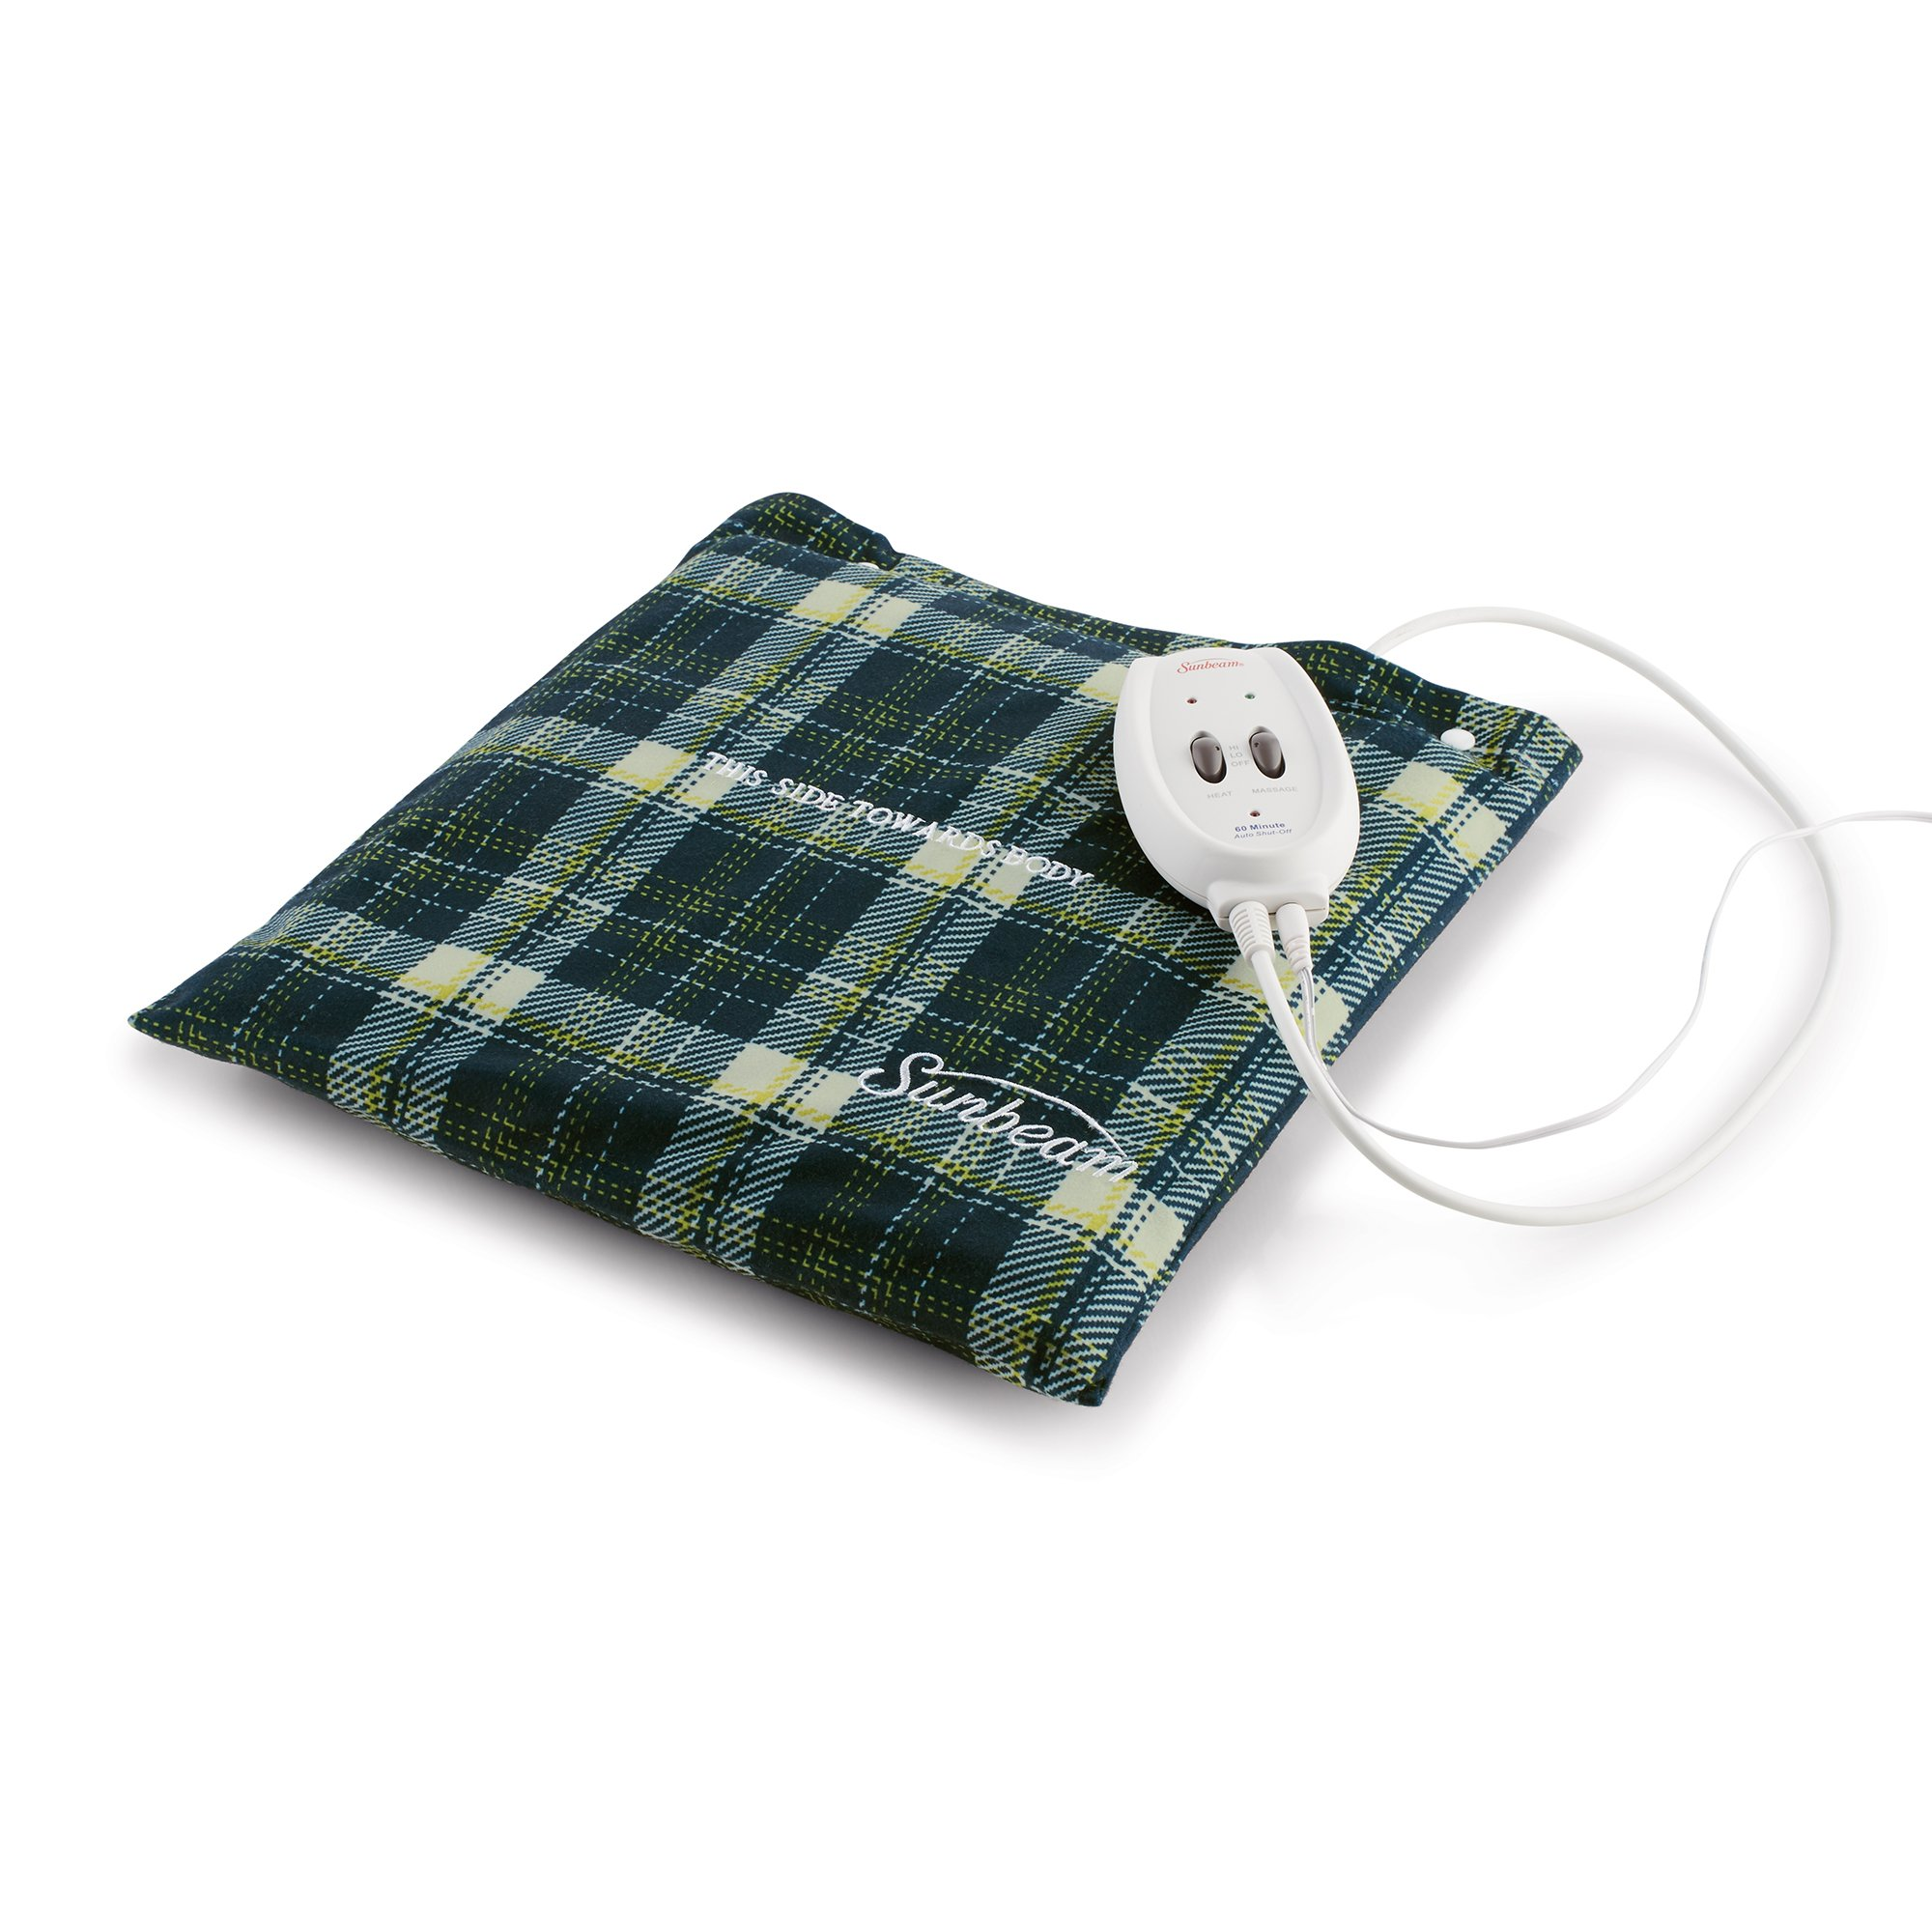 Sunbeam Flexi-Soft Massaging Heating Pad, 2 Heat/Massage Settings, 1-Hour Auto-Off, 12'' x 12'', Plaid